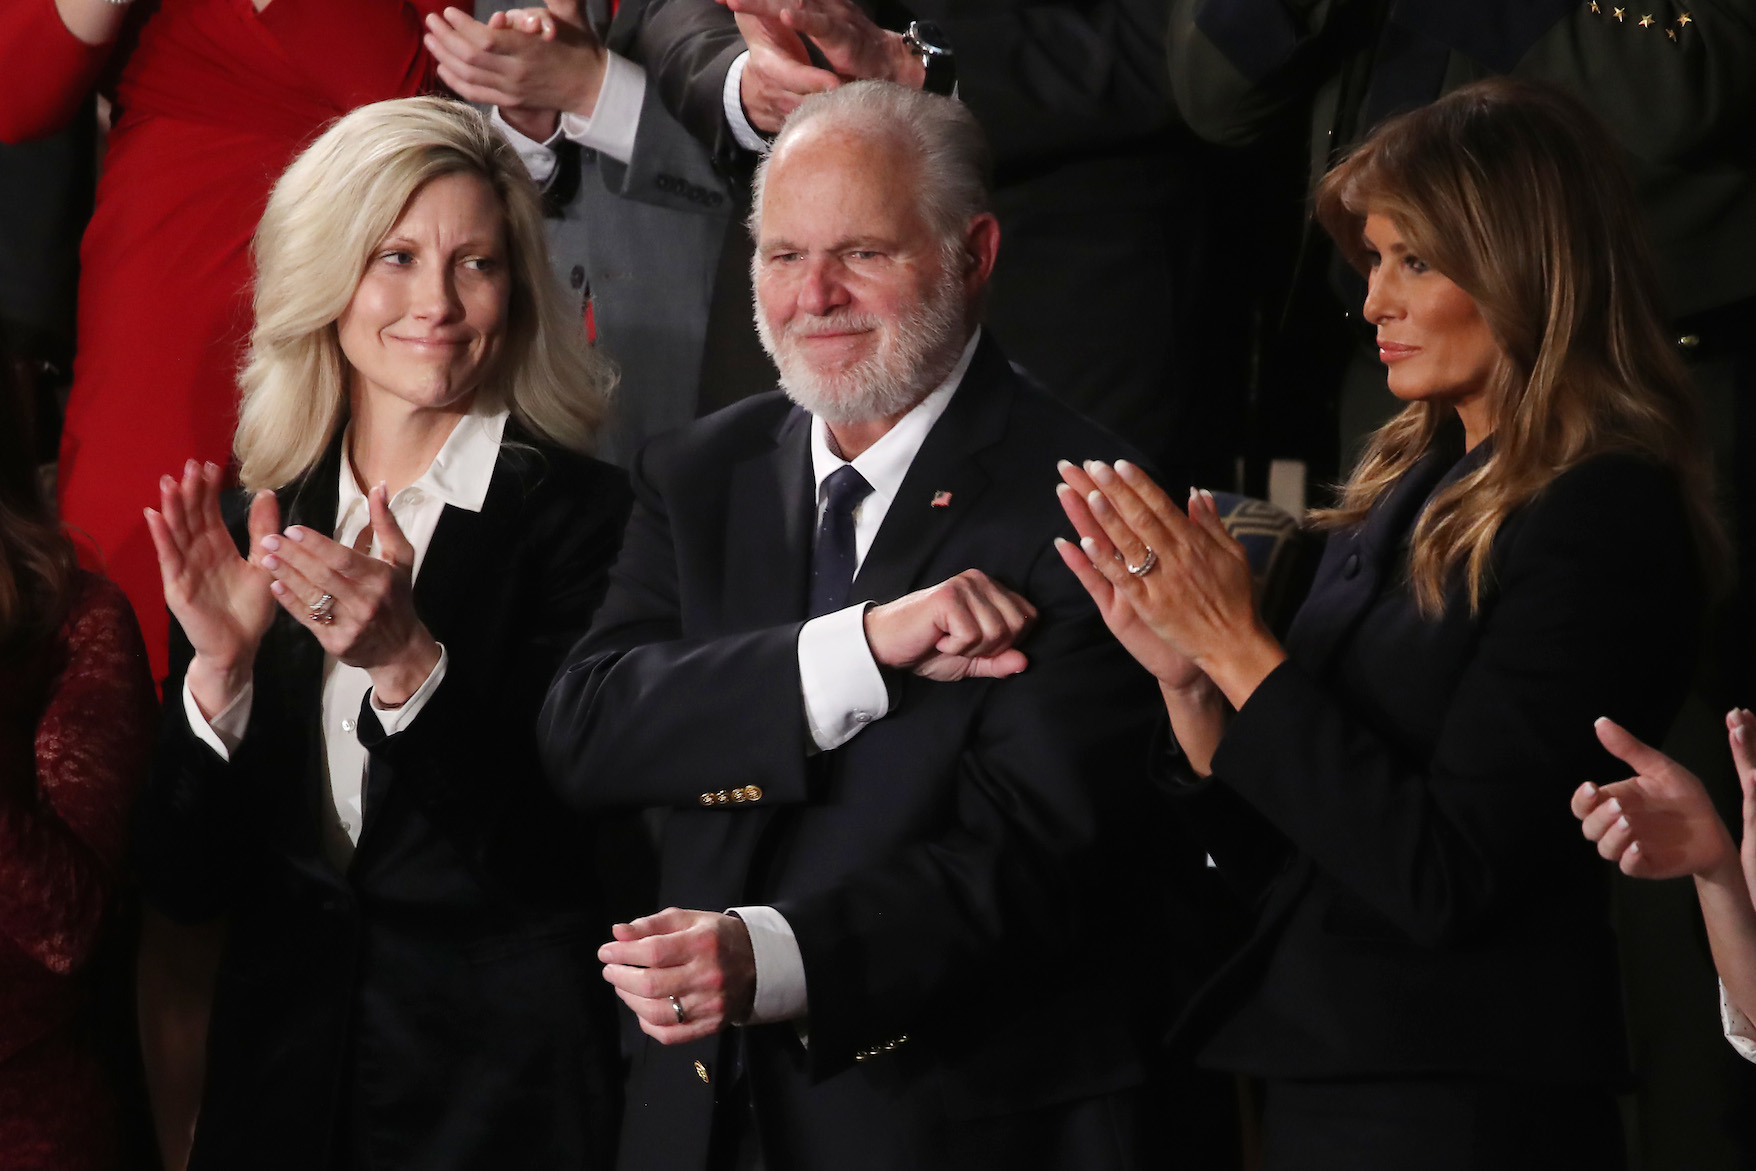 Rush Limbaugh and wife Kathryn Adams Limbaugh attend the State of the Union address